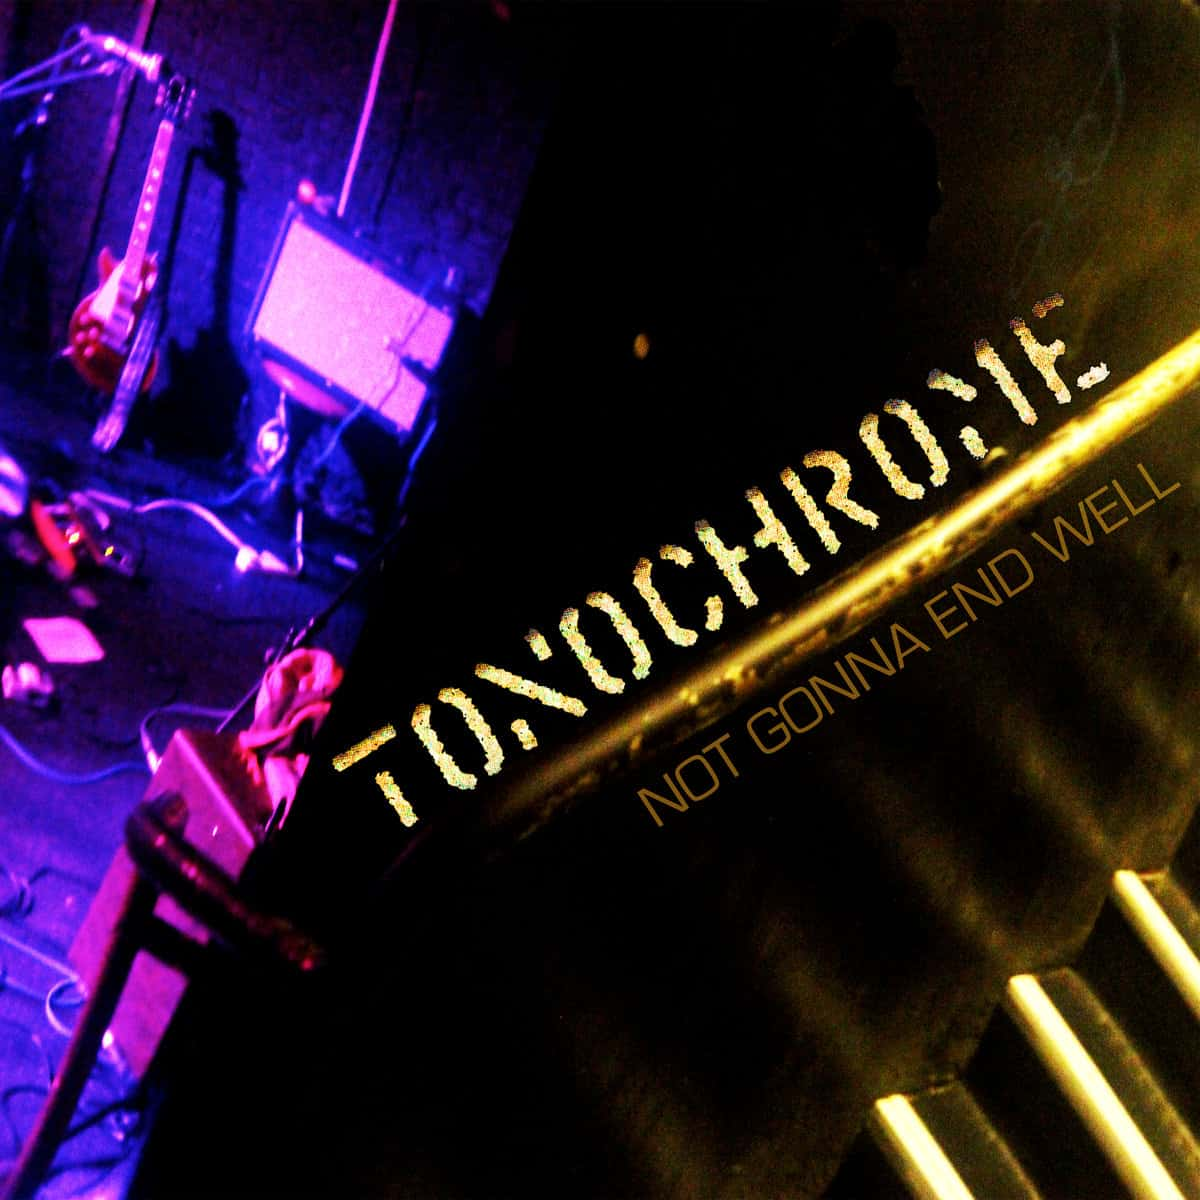 Tonochrome sign to bad elephant music and announce first album.